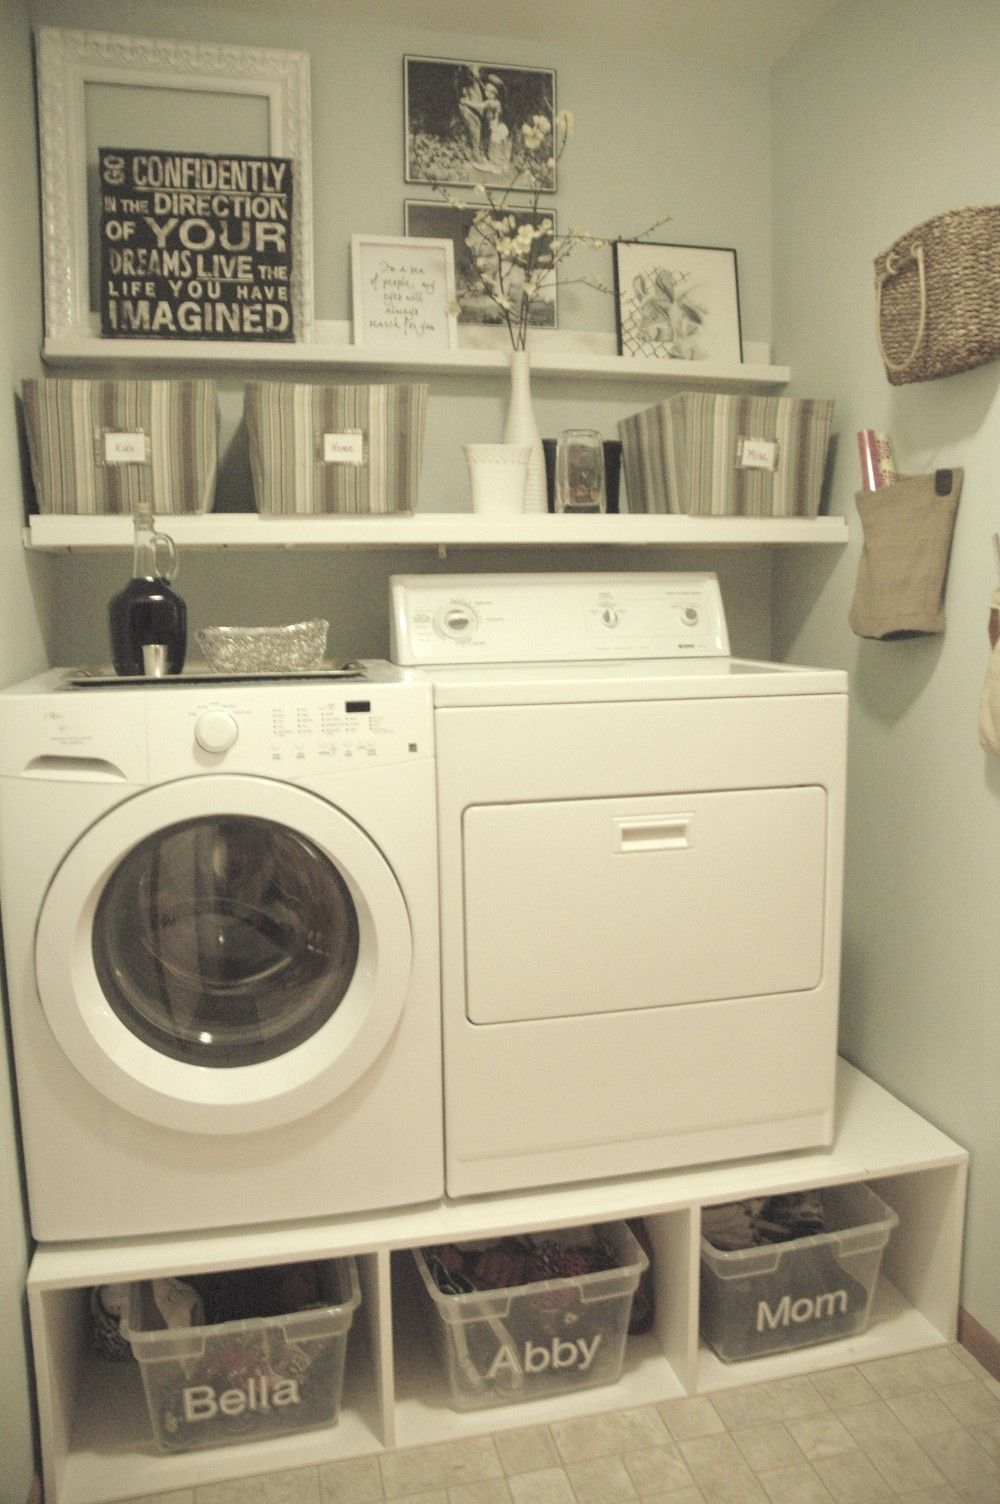 Decoration, Very Small Spaces After Makeover Old Laundry Room Design With DIY Wood Pedestal Front Loading Washer And Dryer As Dirty Clothes Storage Plus Wood Wall Mounted Detergent Storage Ideas ~ Creative Laundry Room Makeover Ideas